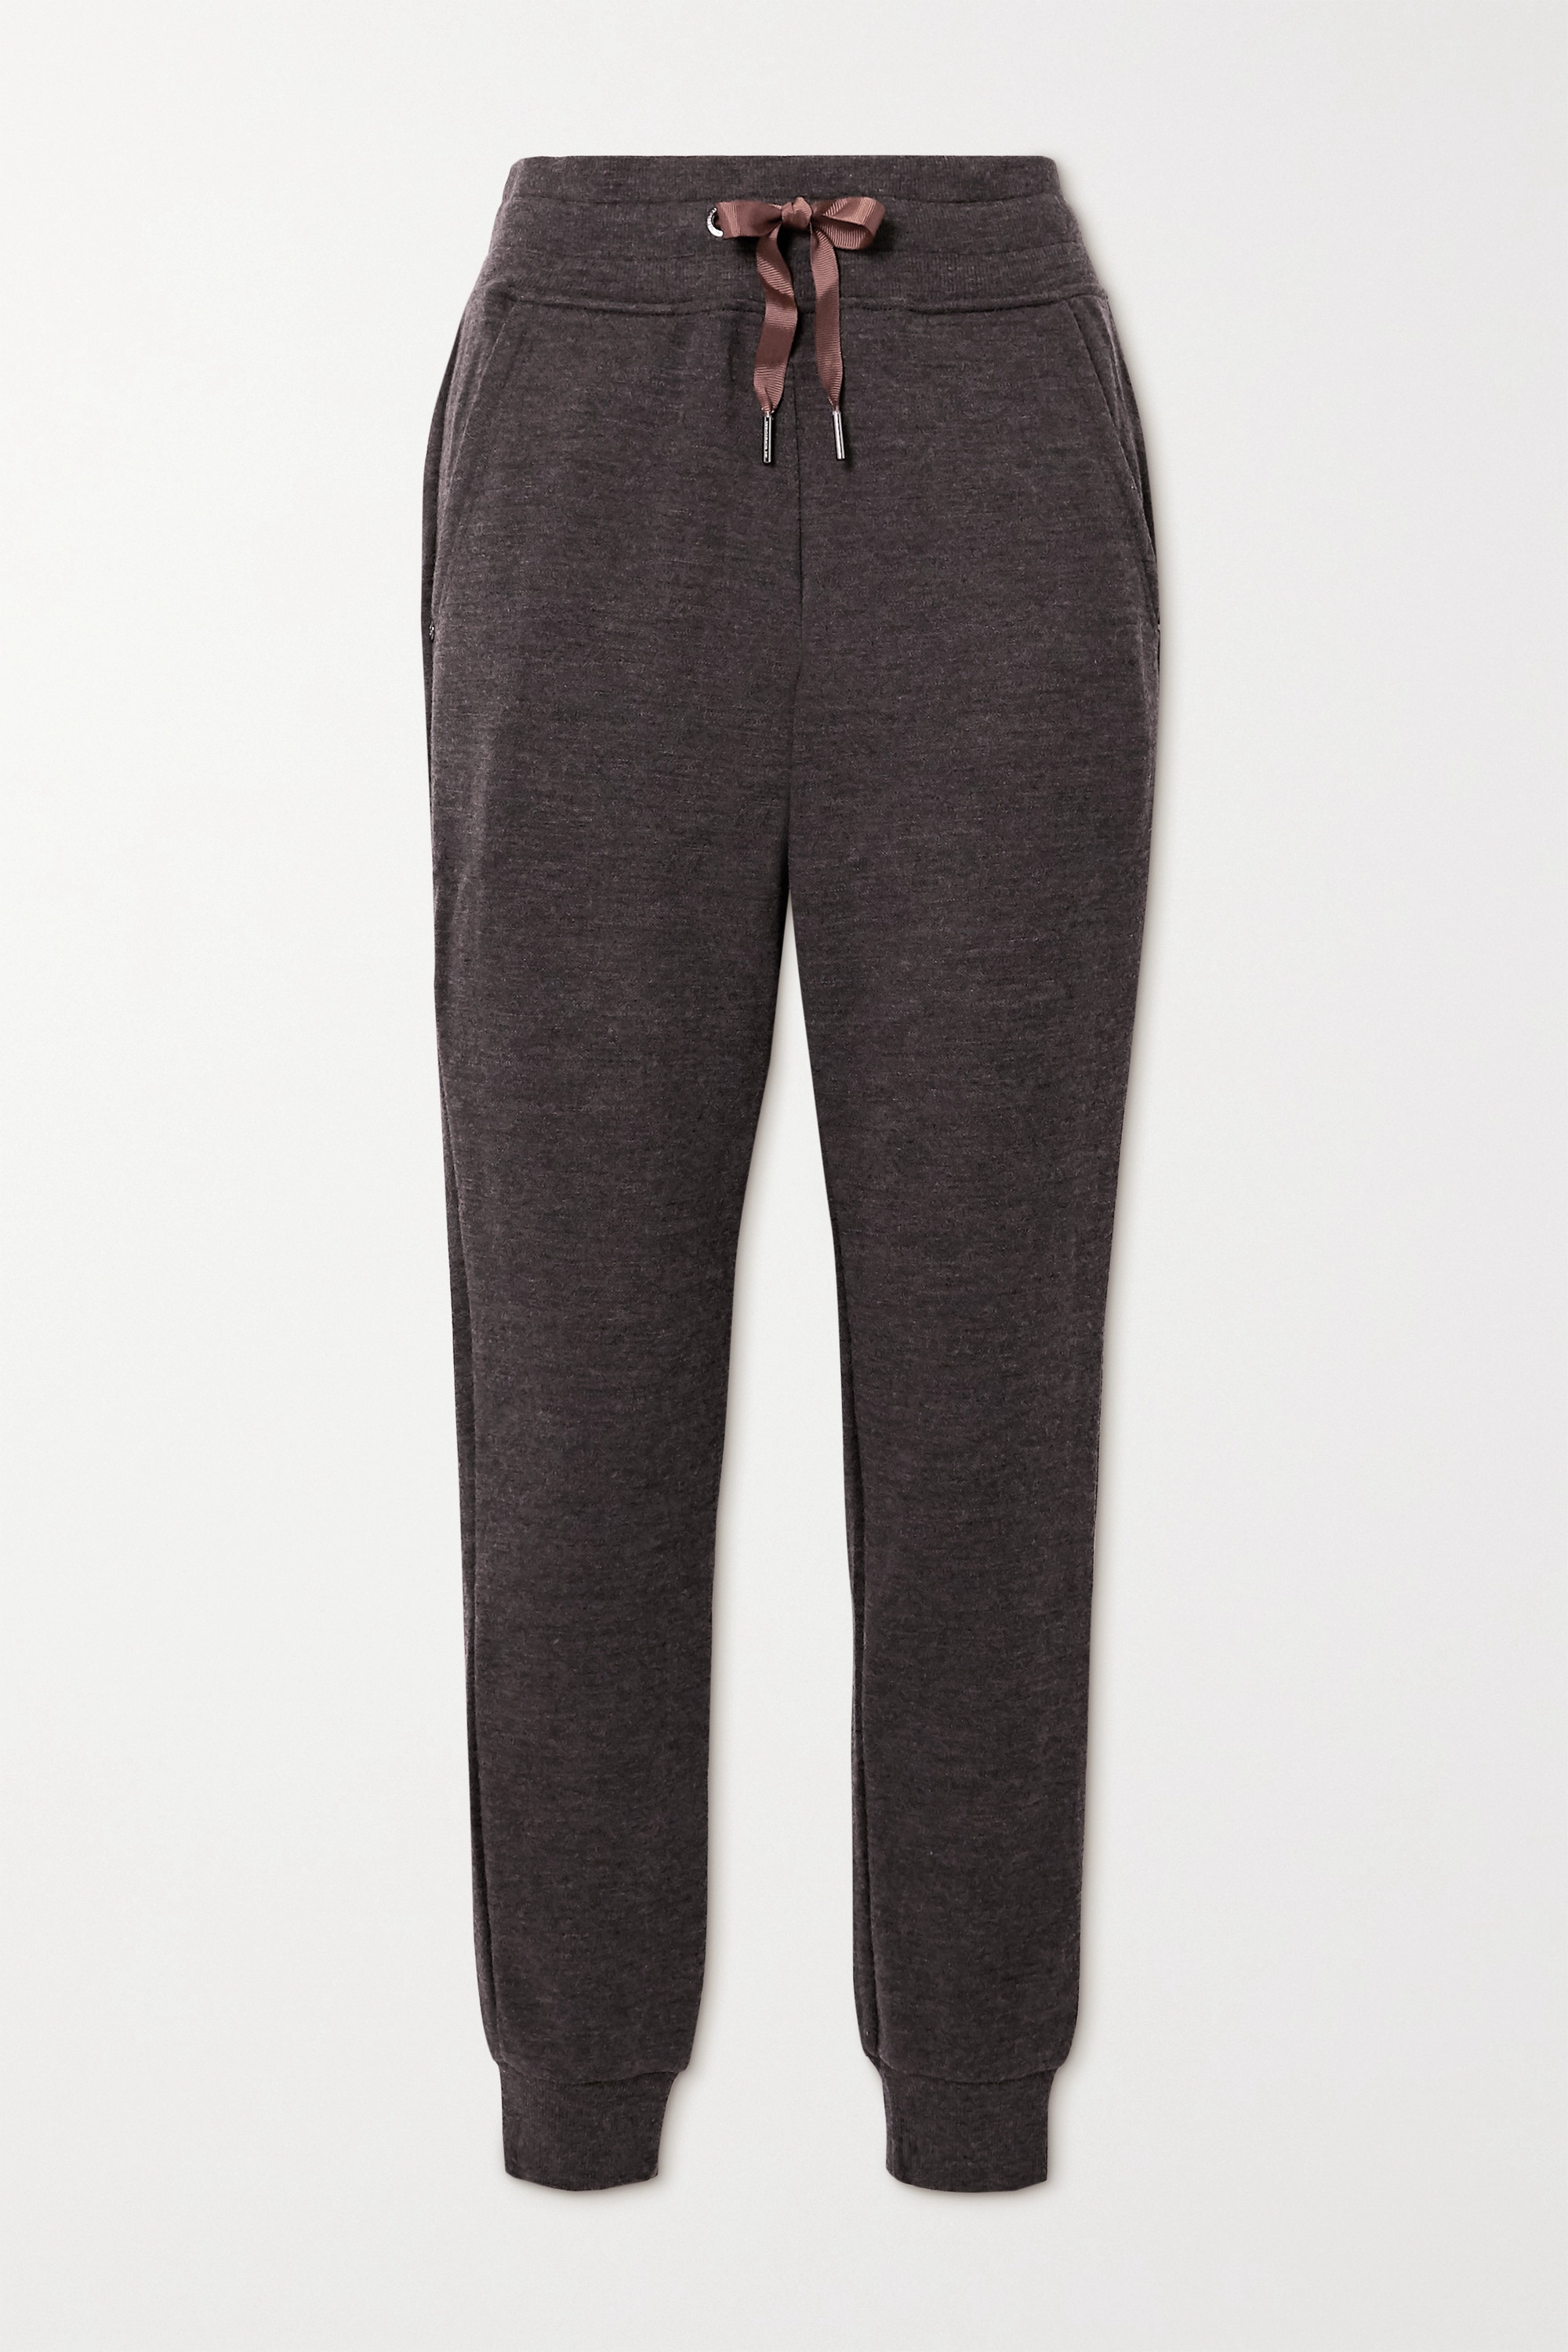 WE NORWEGIANS Tind merino wool track pants